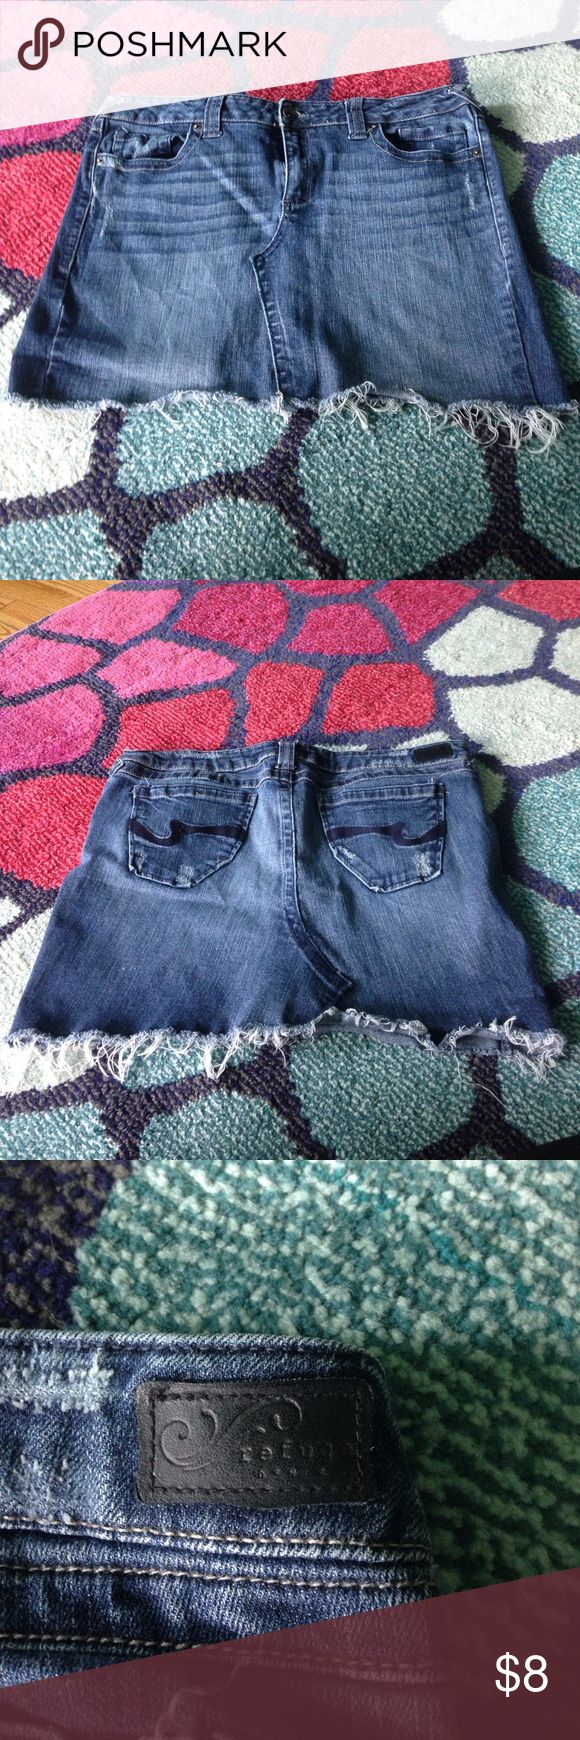 Distressed jean skirt Jean mini skirt. Distressed look with fringe bottom. Great condition. refuge Skirts Mini